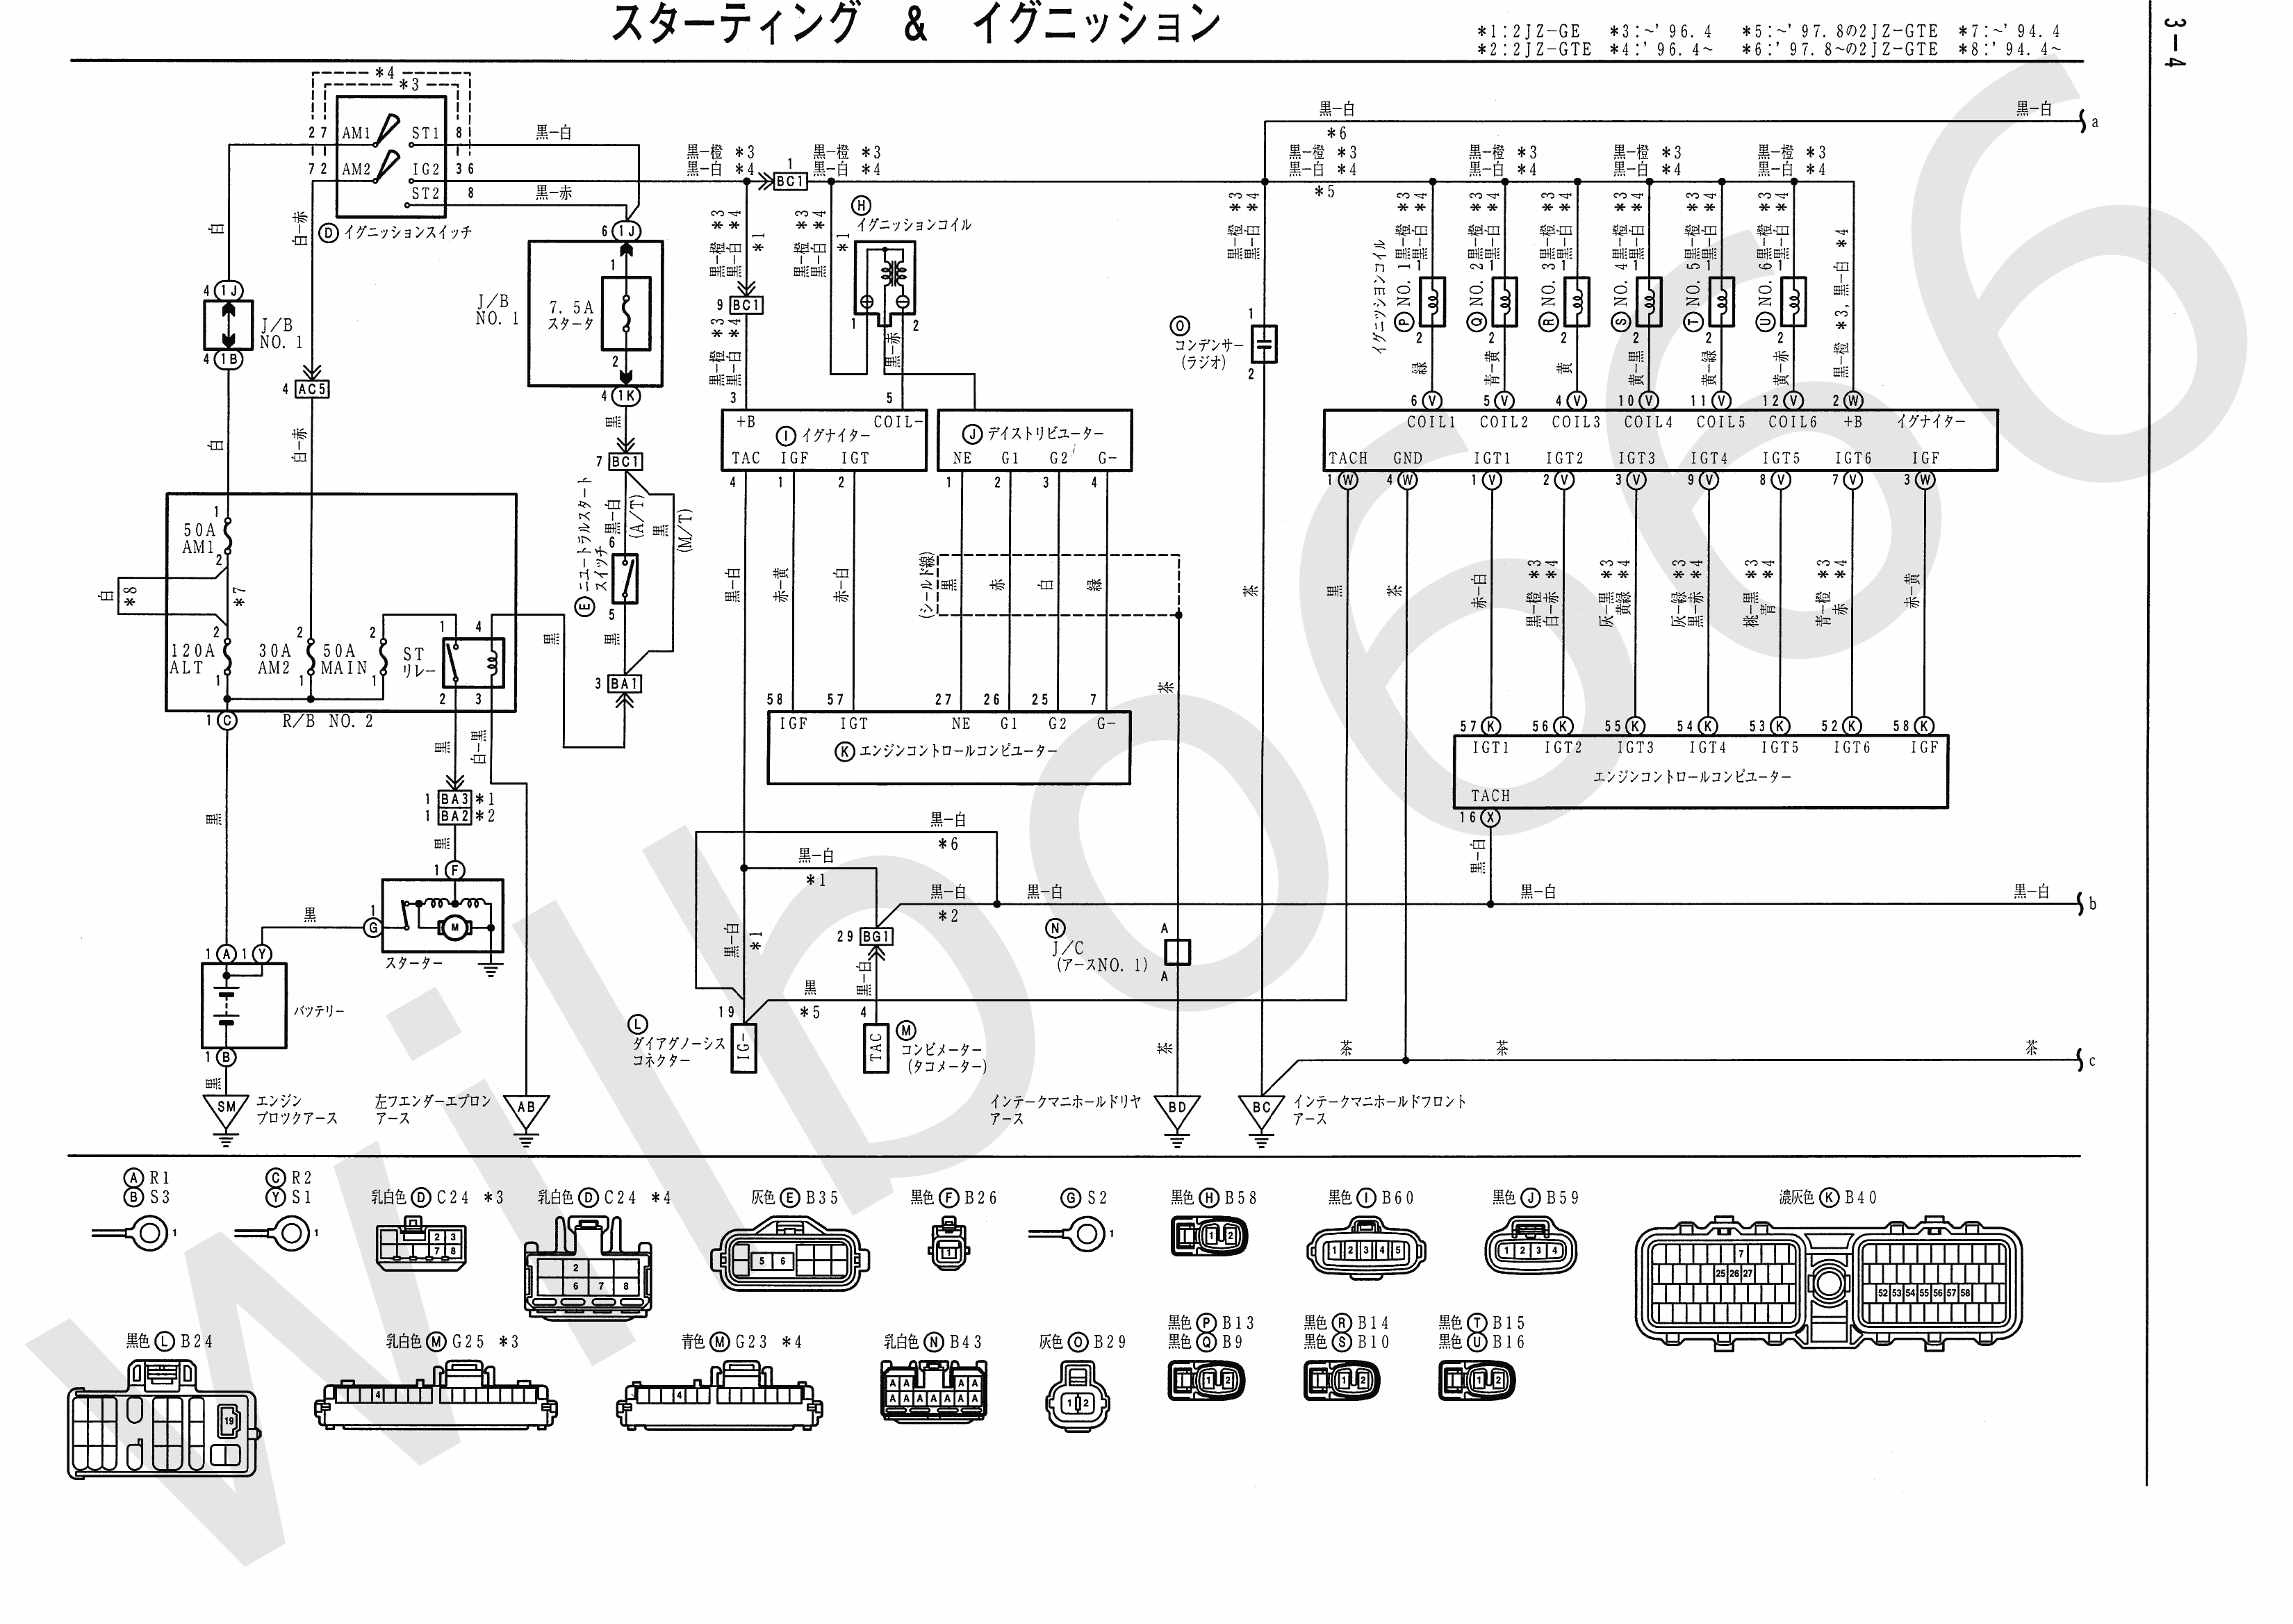 Toyota Engine Wiring Diagram Free Download P062dno1 Wilbo666 2jz Ge Jza80 Supra